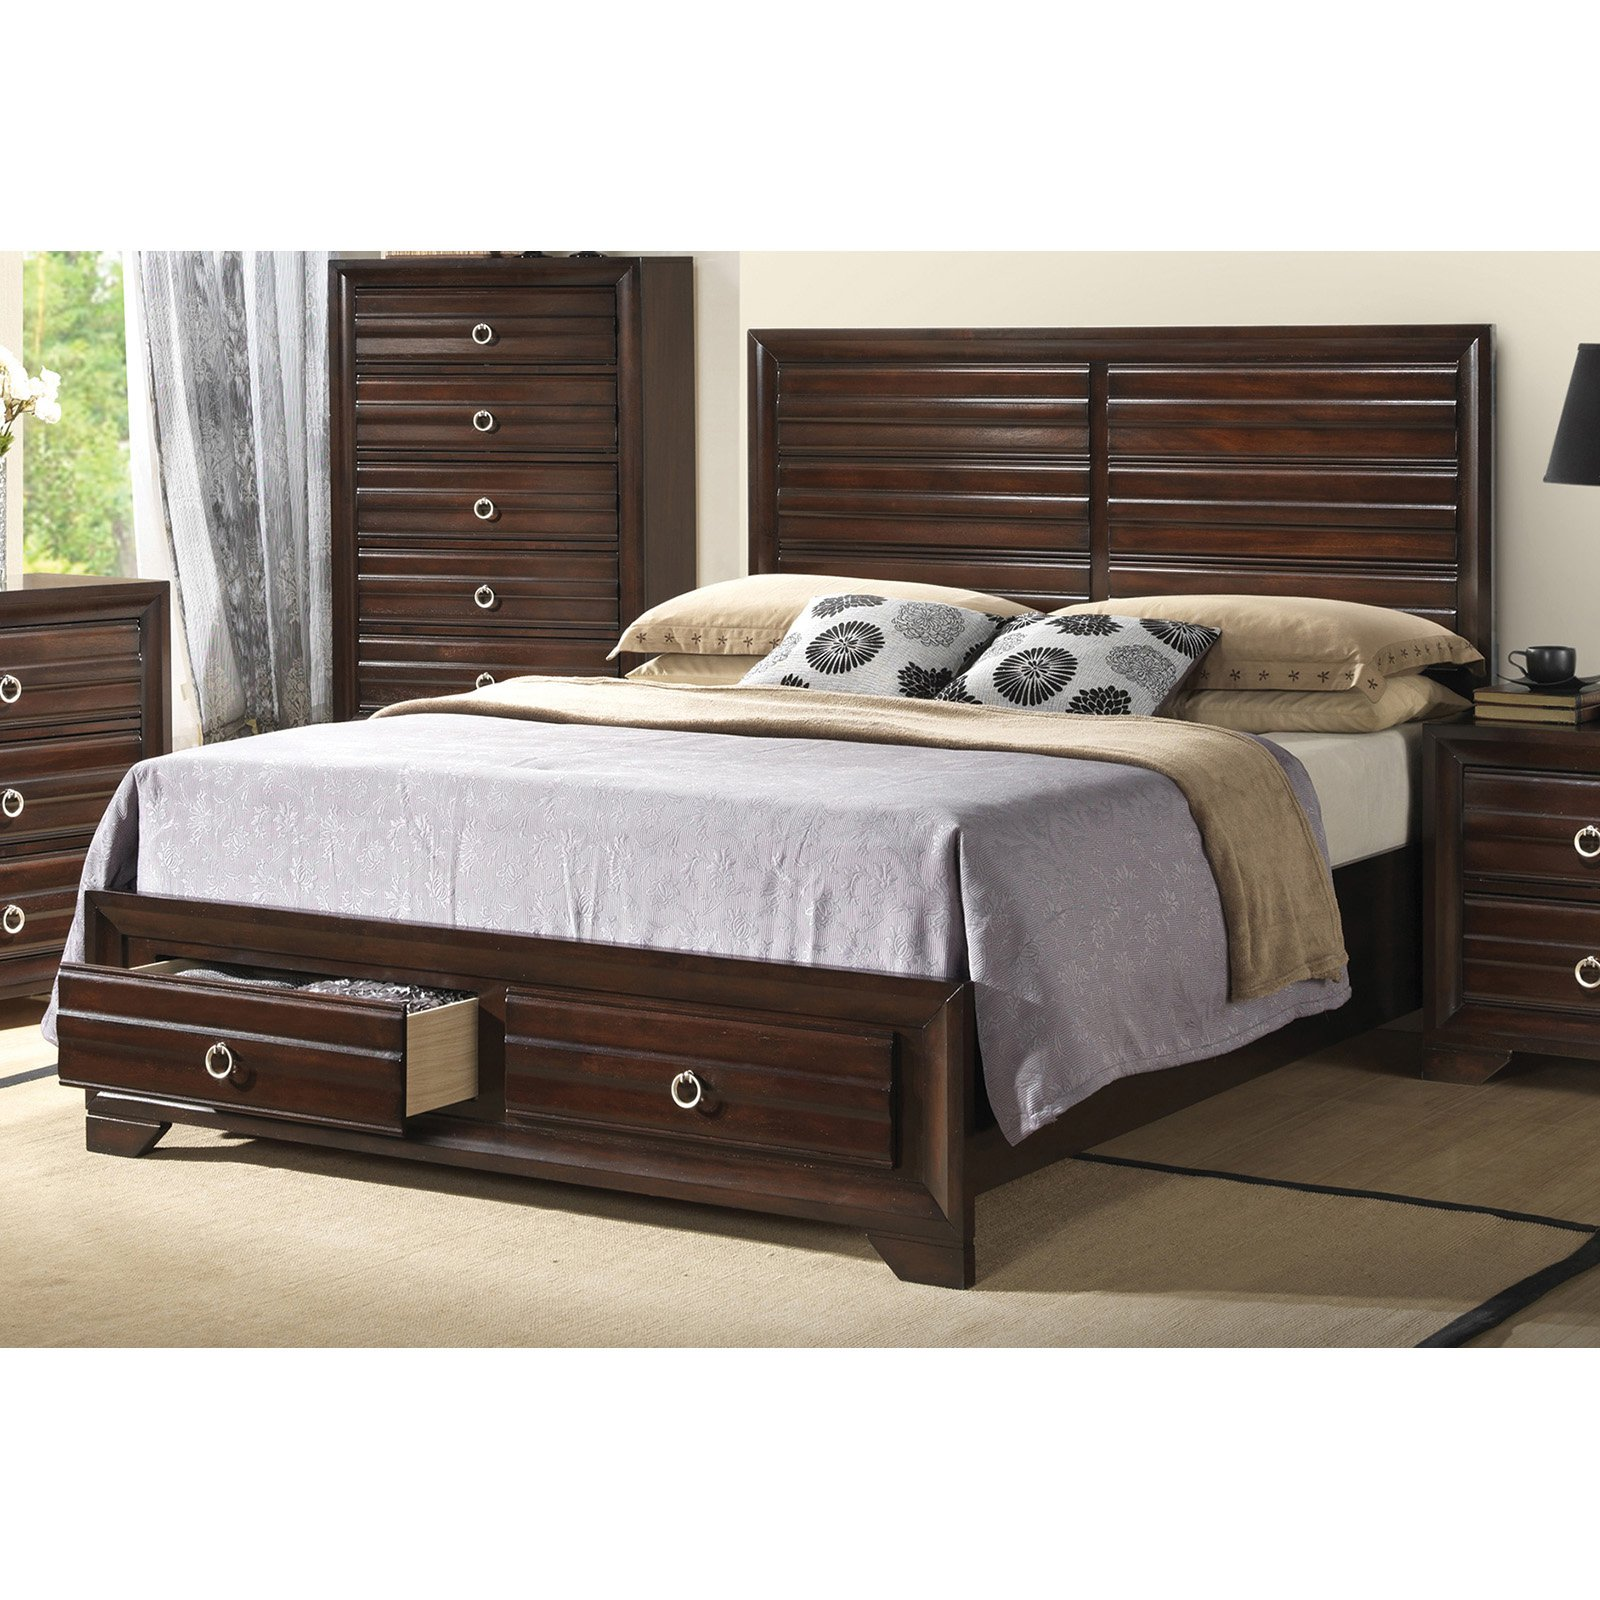 Coaster Furniture Bryce Panel Storage Bed